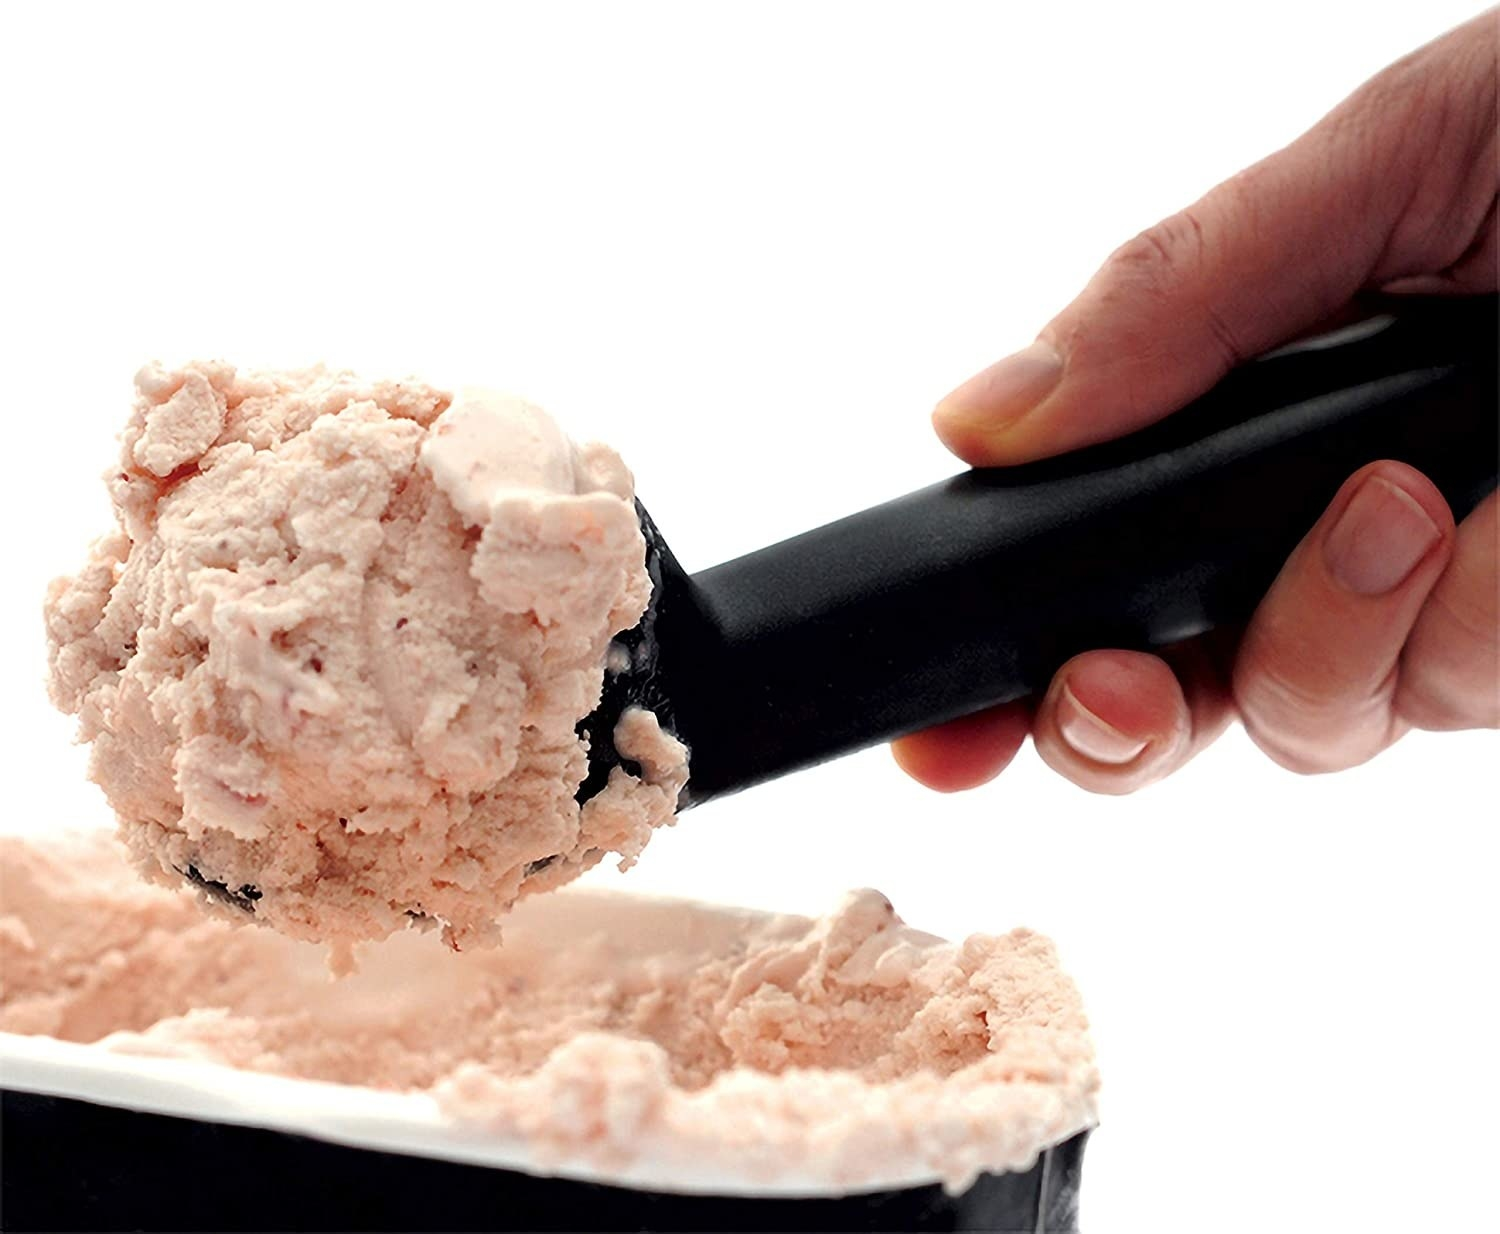 A person scoops ice cream out of a tub